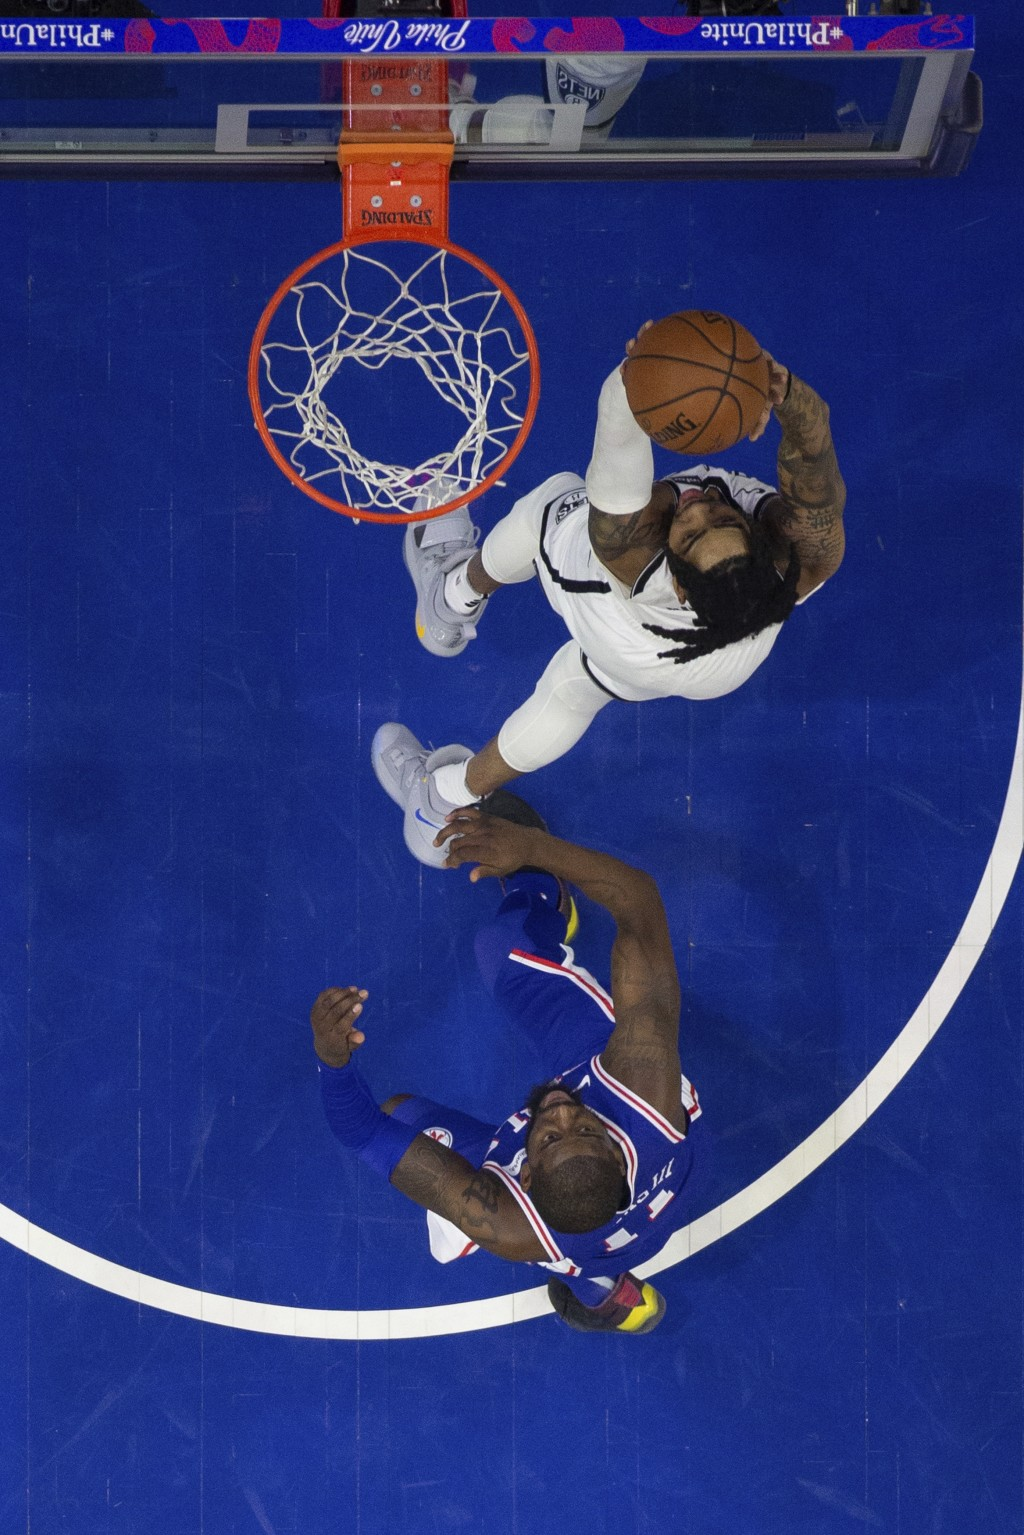 Brooklyn Nets' D'Angelo Russell, right, goes up for the shot against Philadelphia 76ers' James Ennis III, left, during the first half in Game 2 of a f...